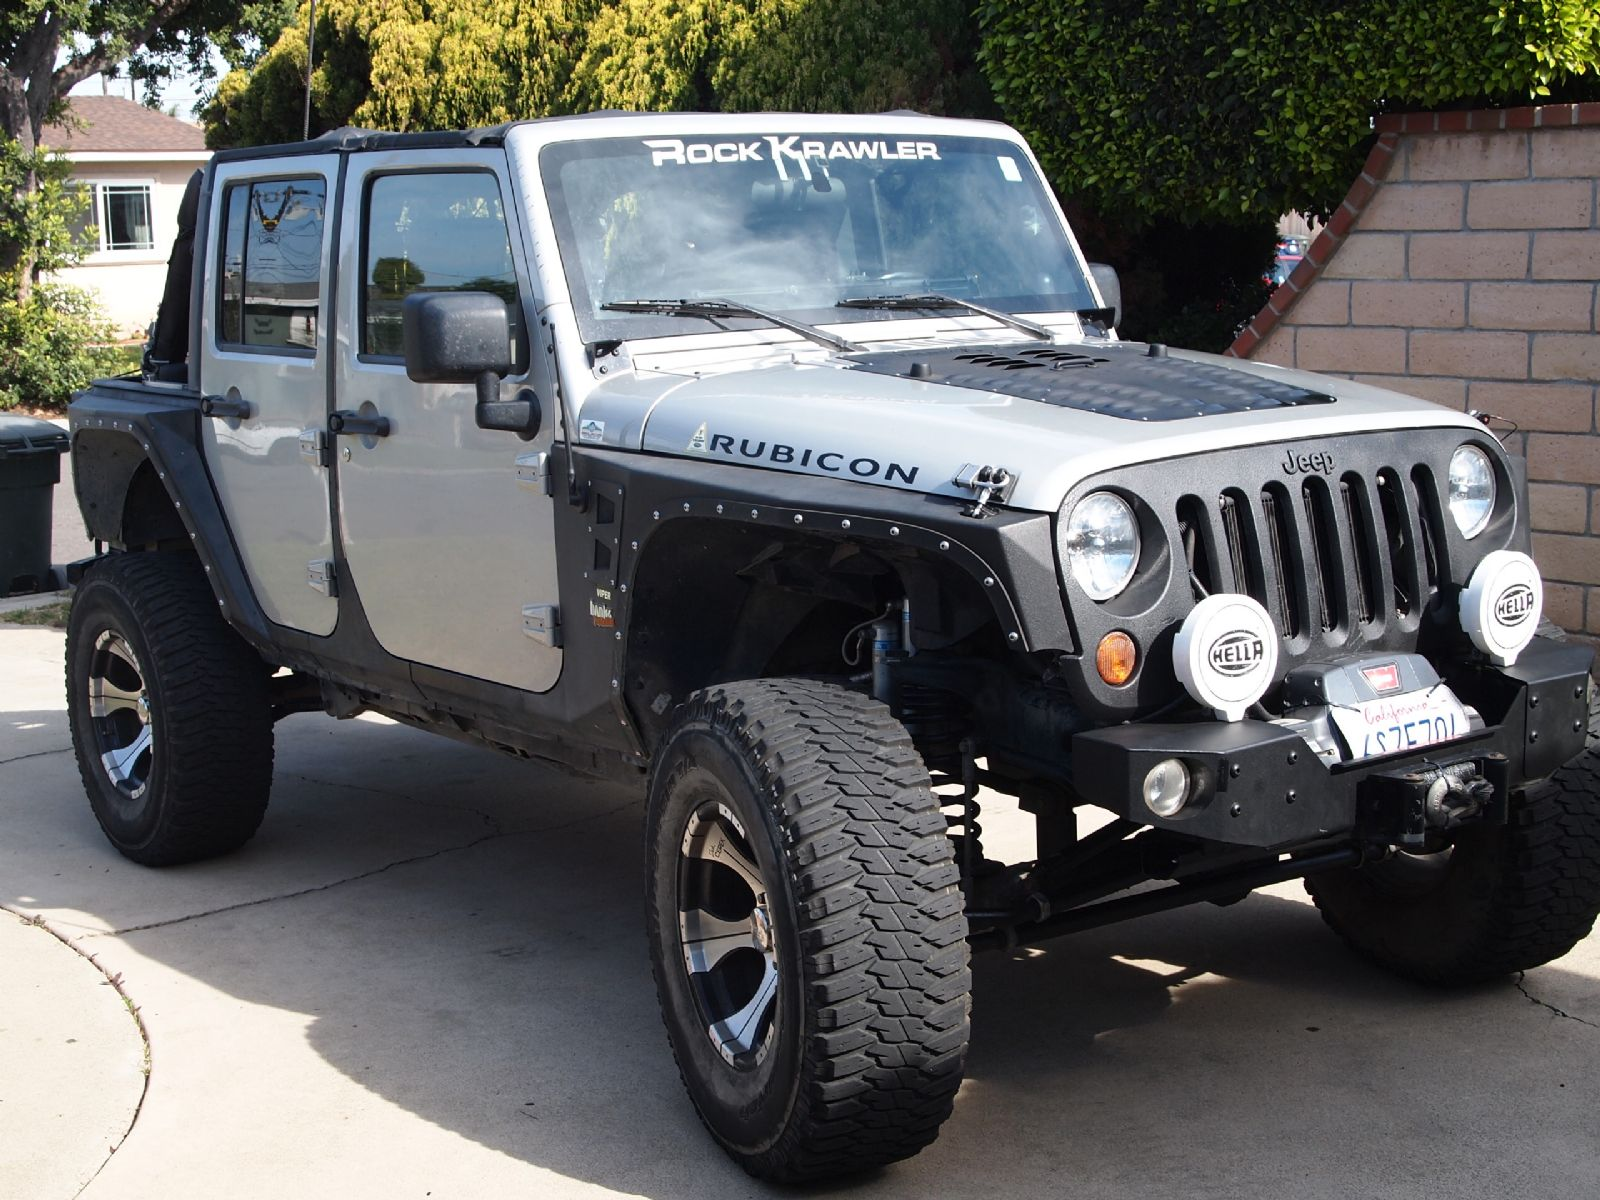 2007 jeep wrangler jk unlimited rubicon for sale costa mesa california. Black Bedroom Furniture Sets. Home Design Ideas